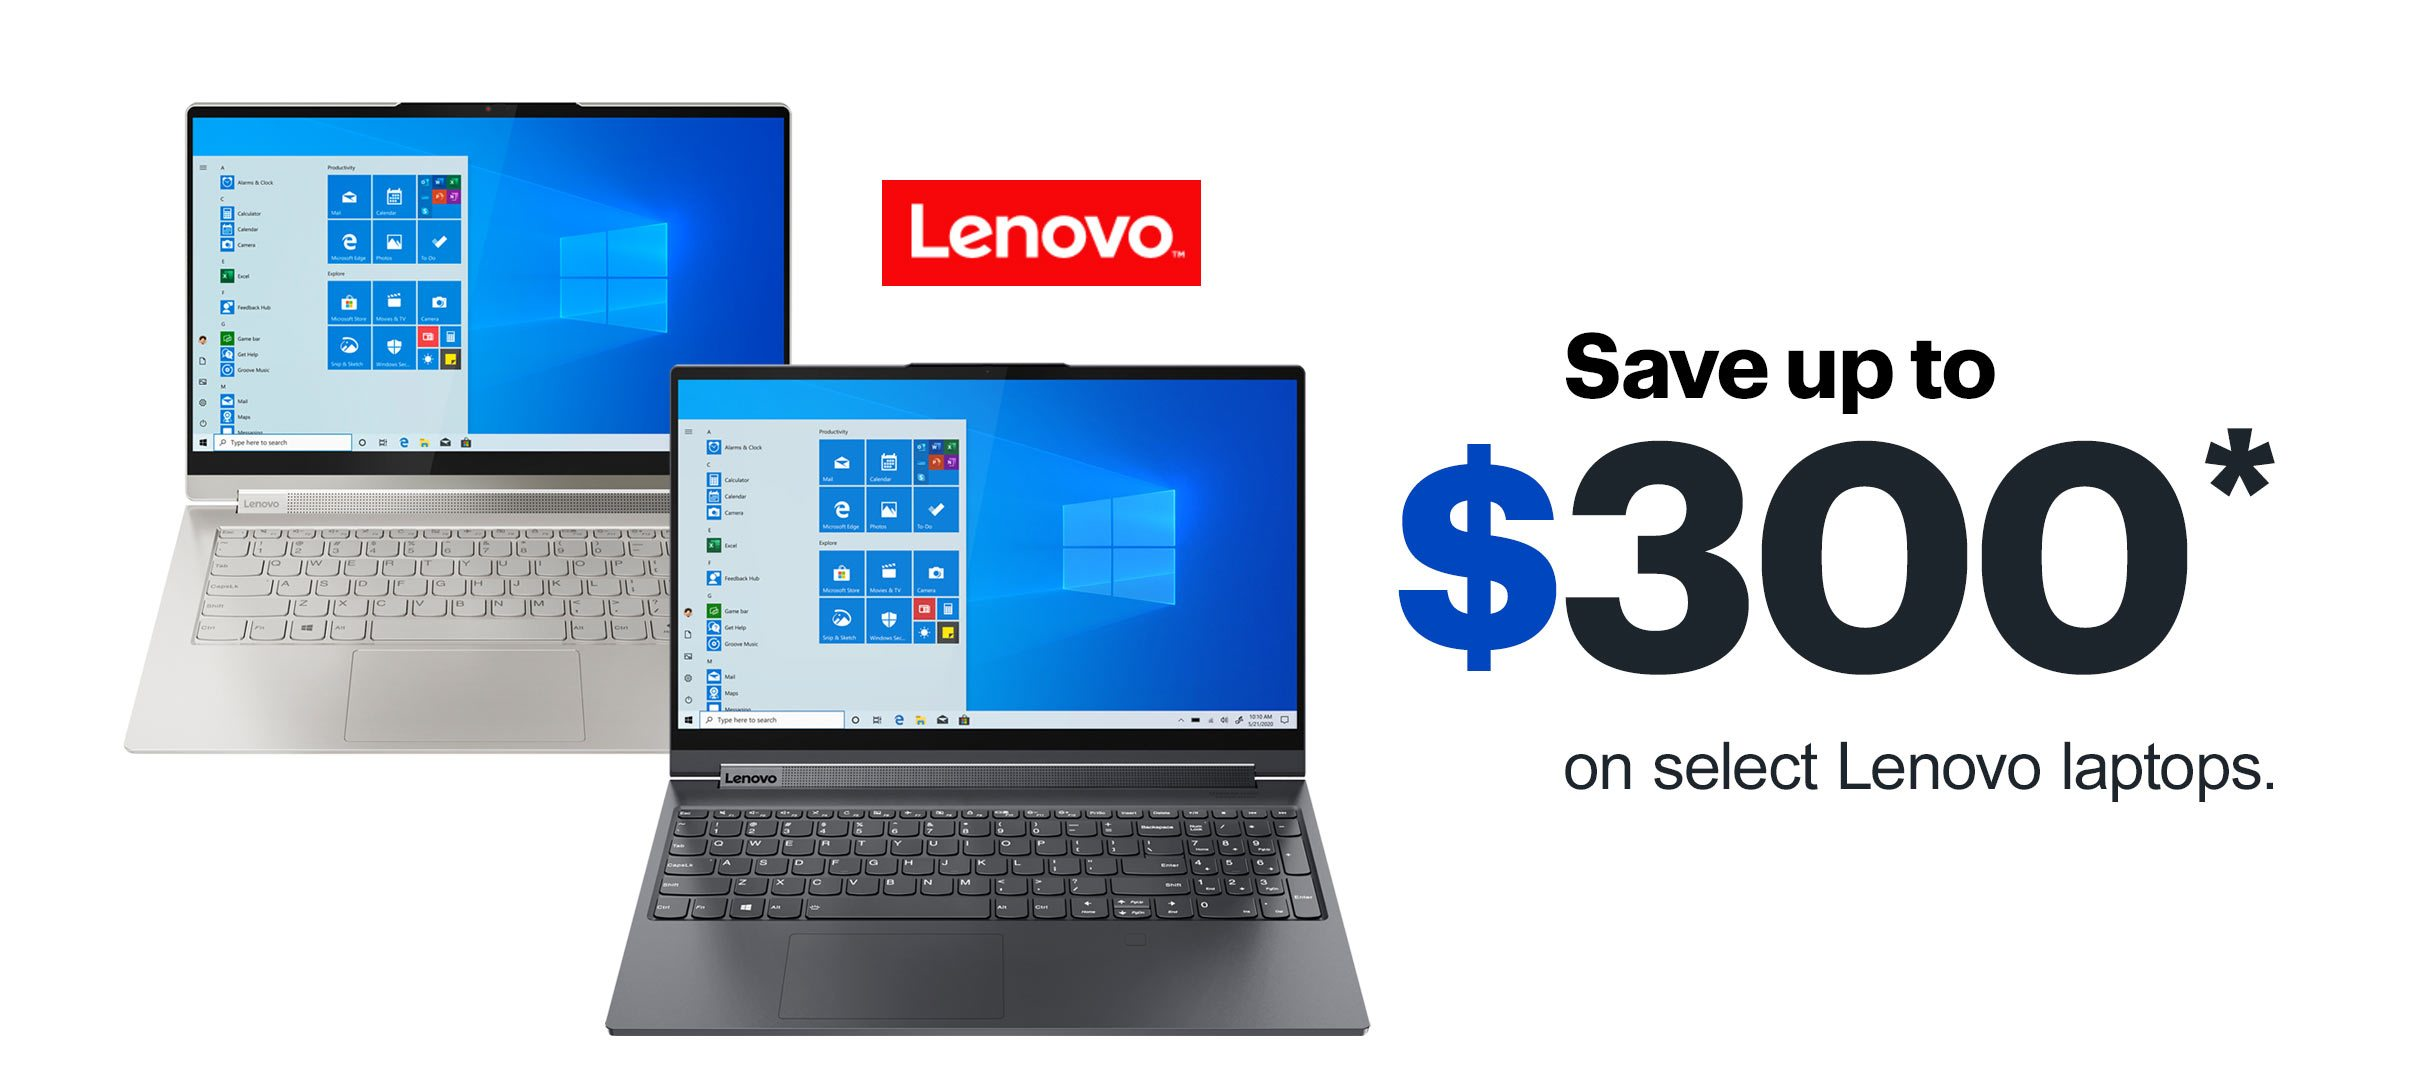 Save up to $300 on select Lenovo laptops. Reference disclaimer.